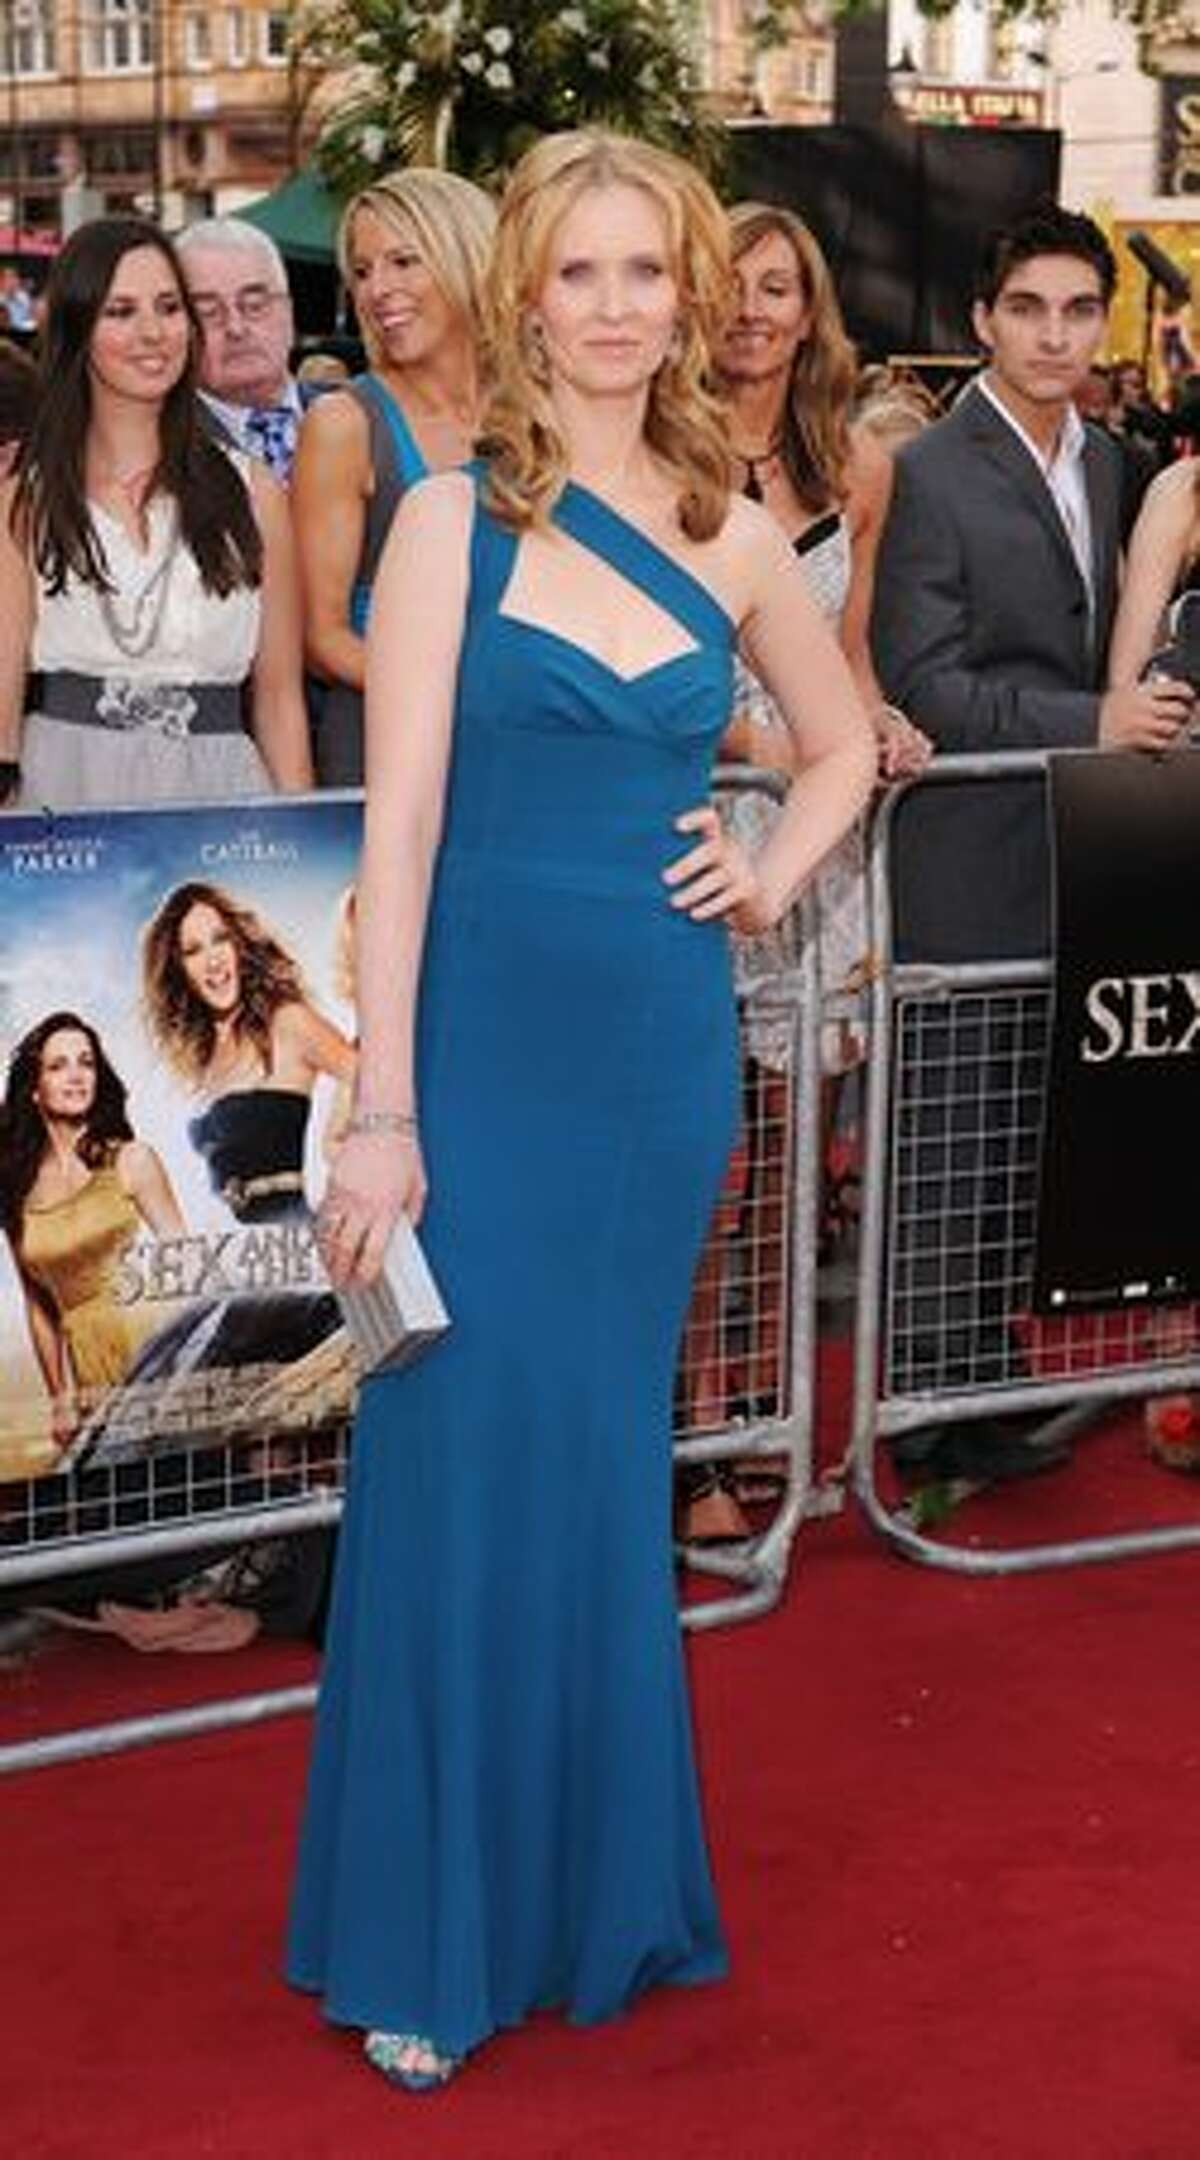 Cynthia Nixon attends the UK premiere of Sex And The City 2 at Odeon Leicester Square in London.